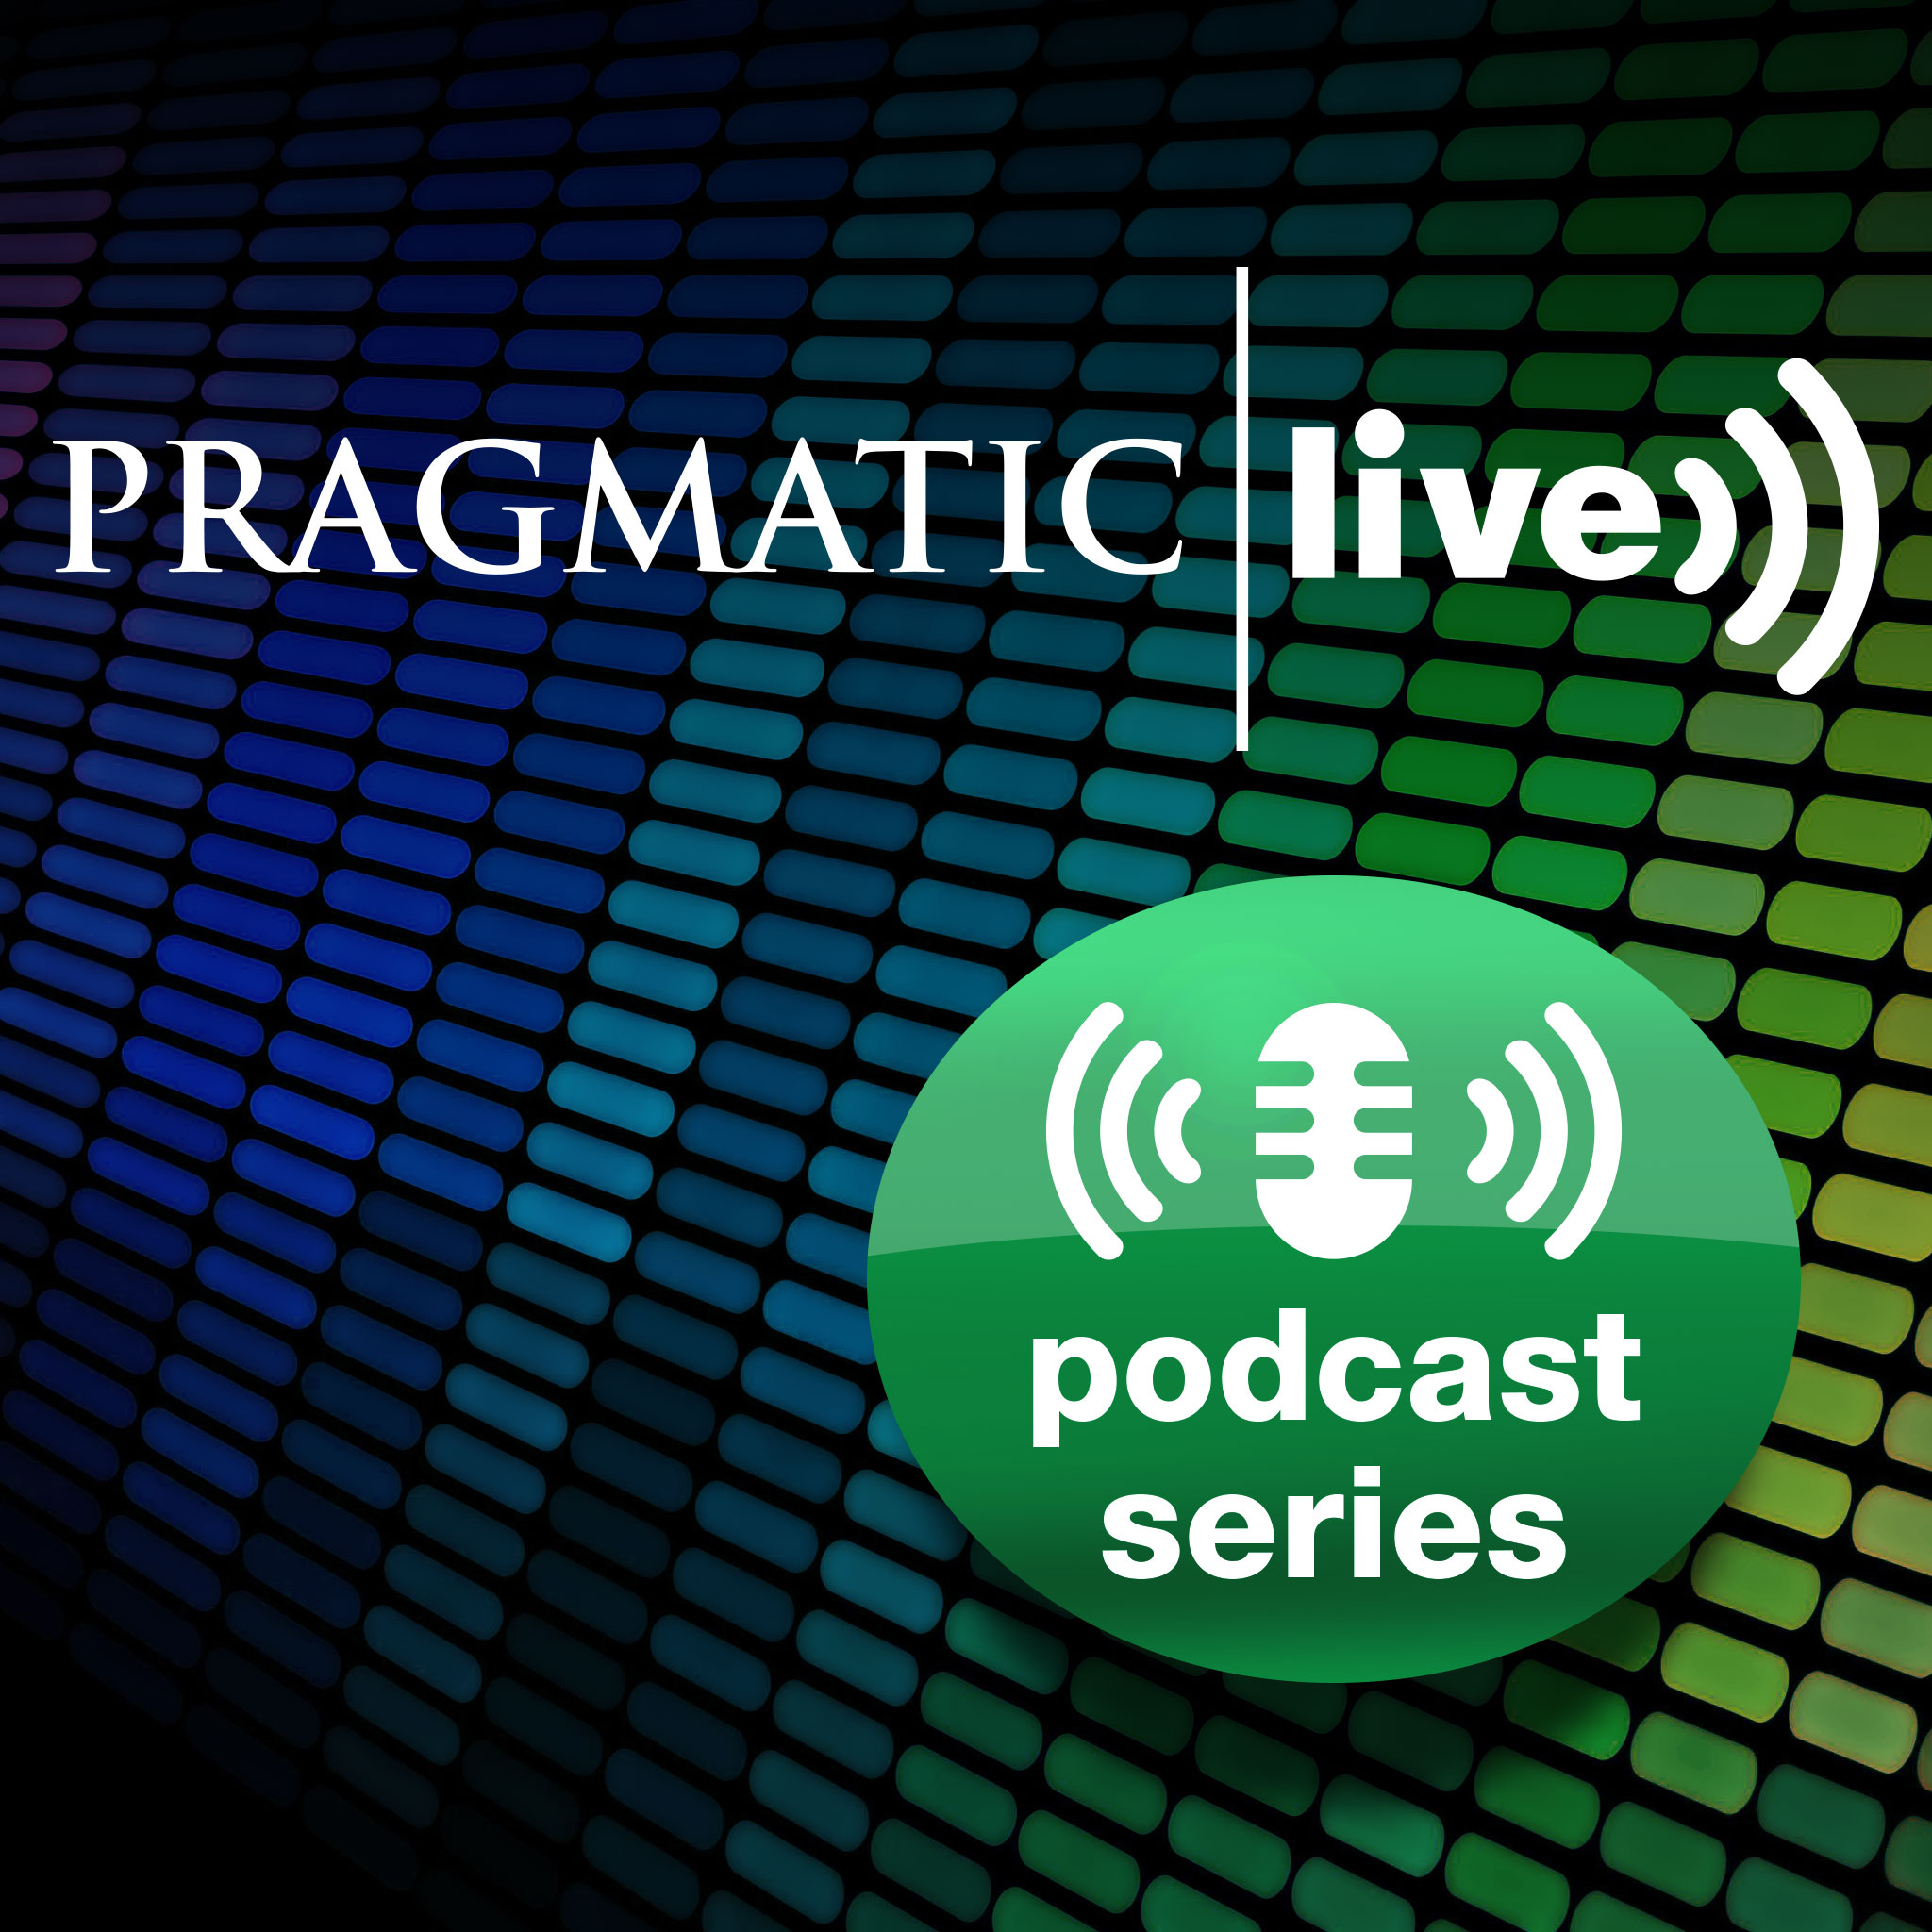 PRAGMATIC LIVE PODCAST